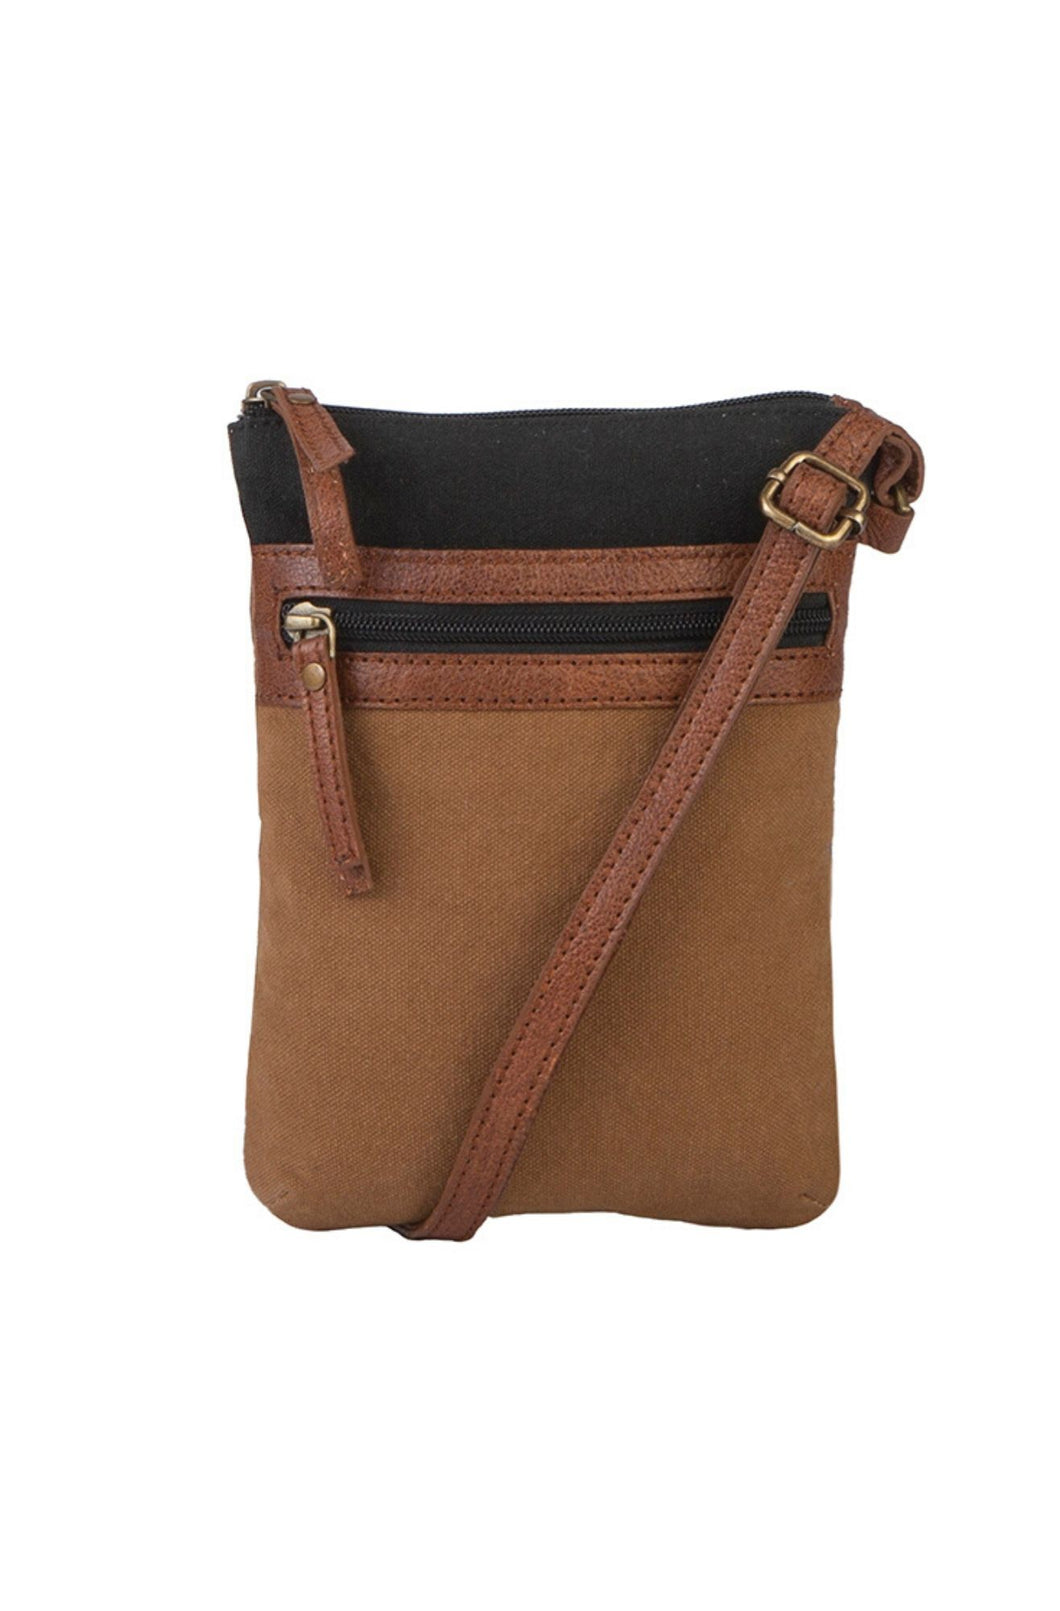 The Perfect Crossbody